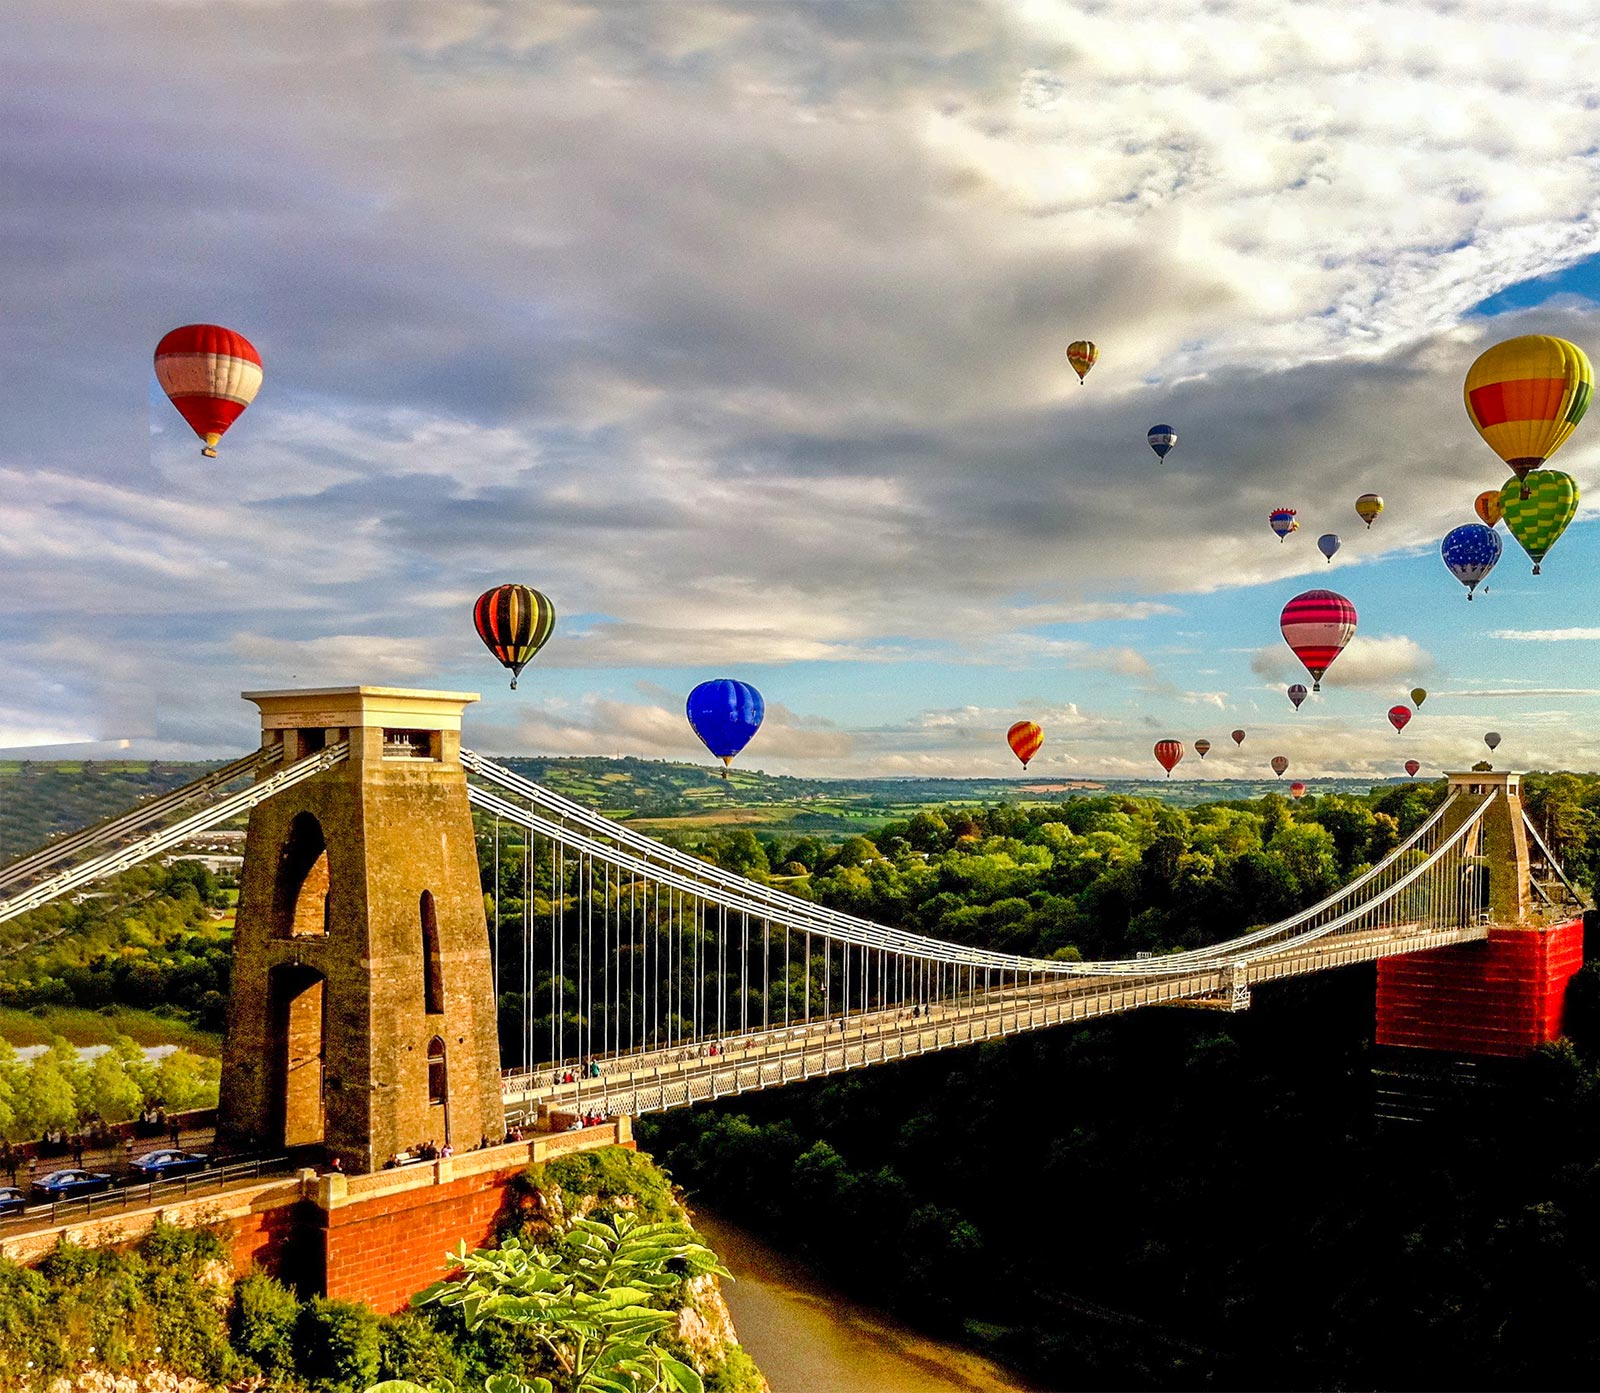 Bridge with hot air balloons